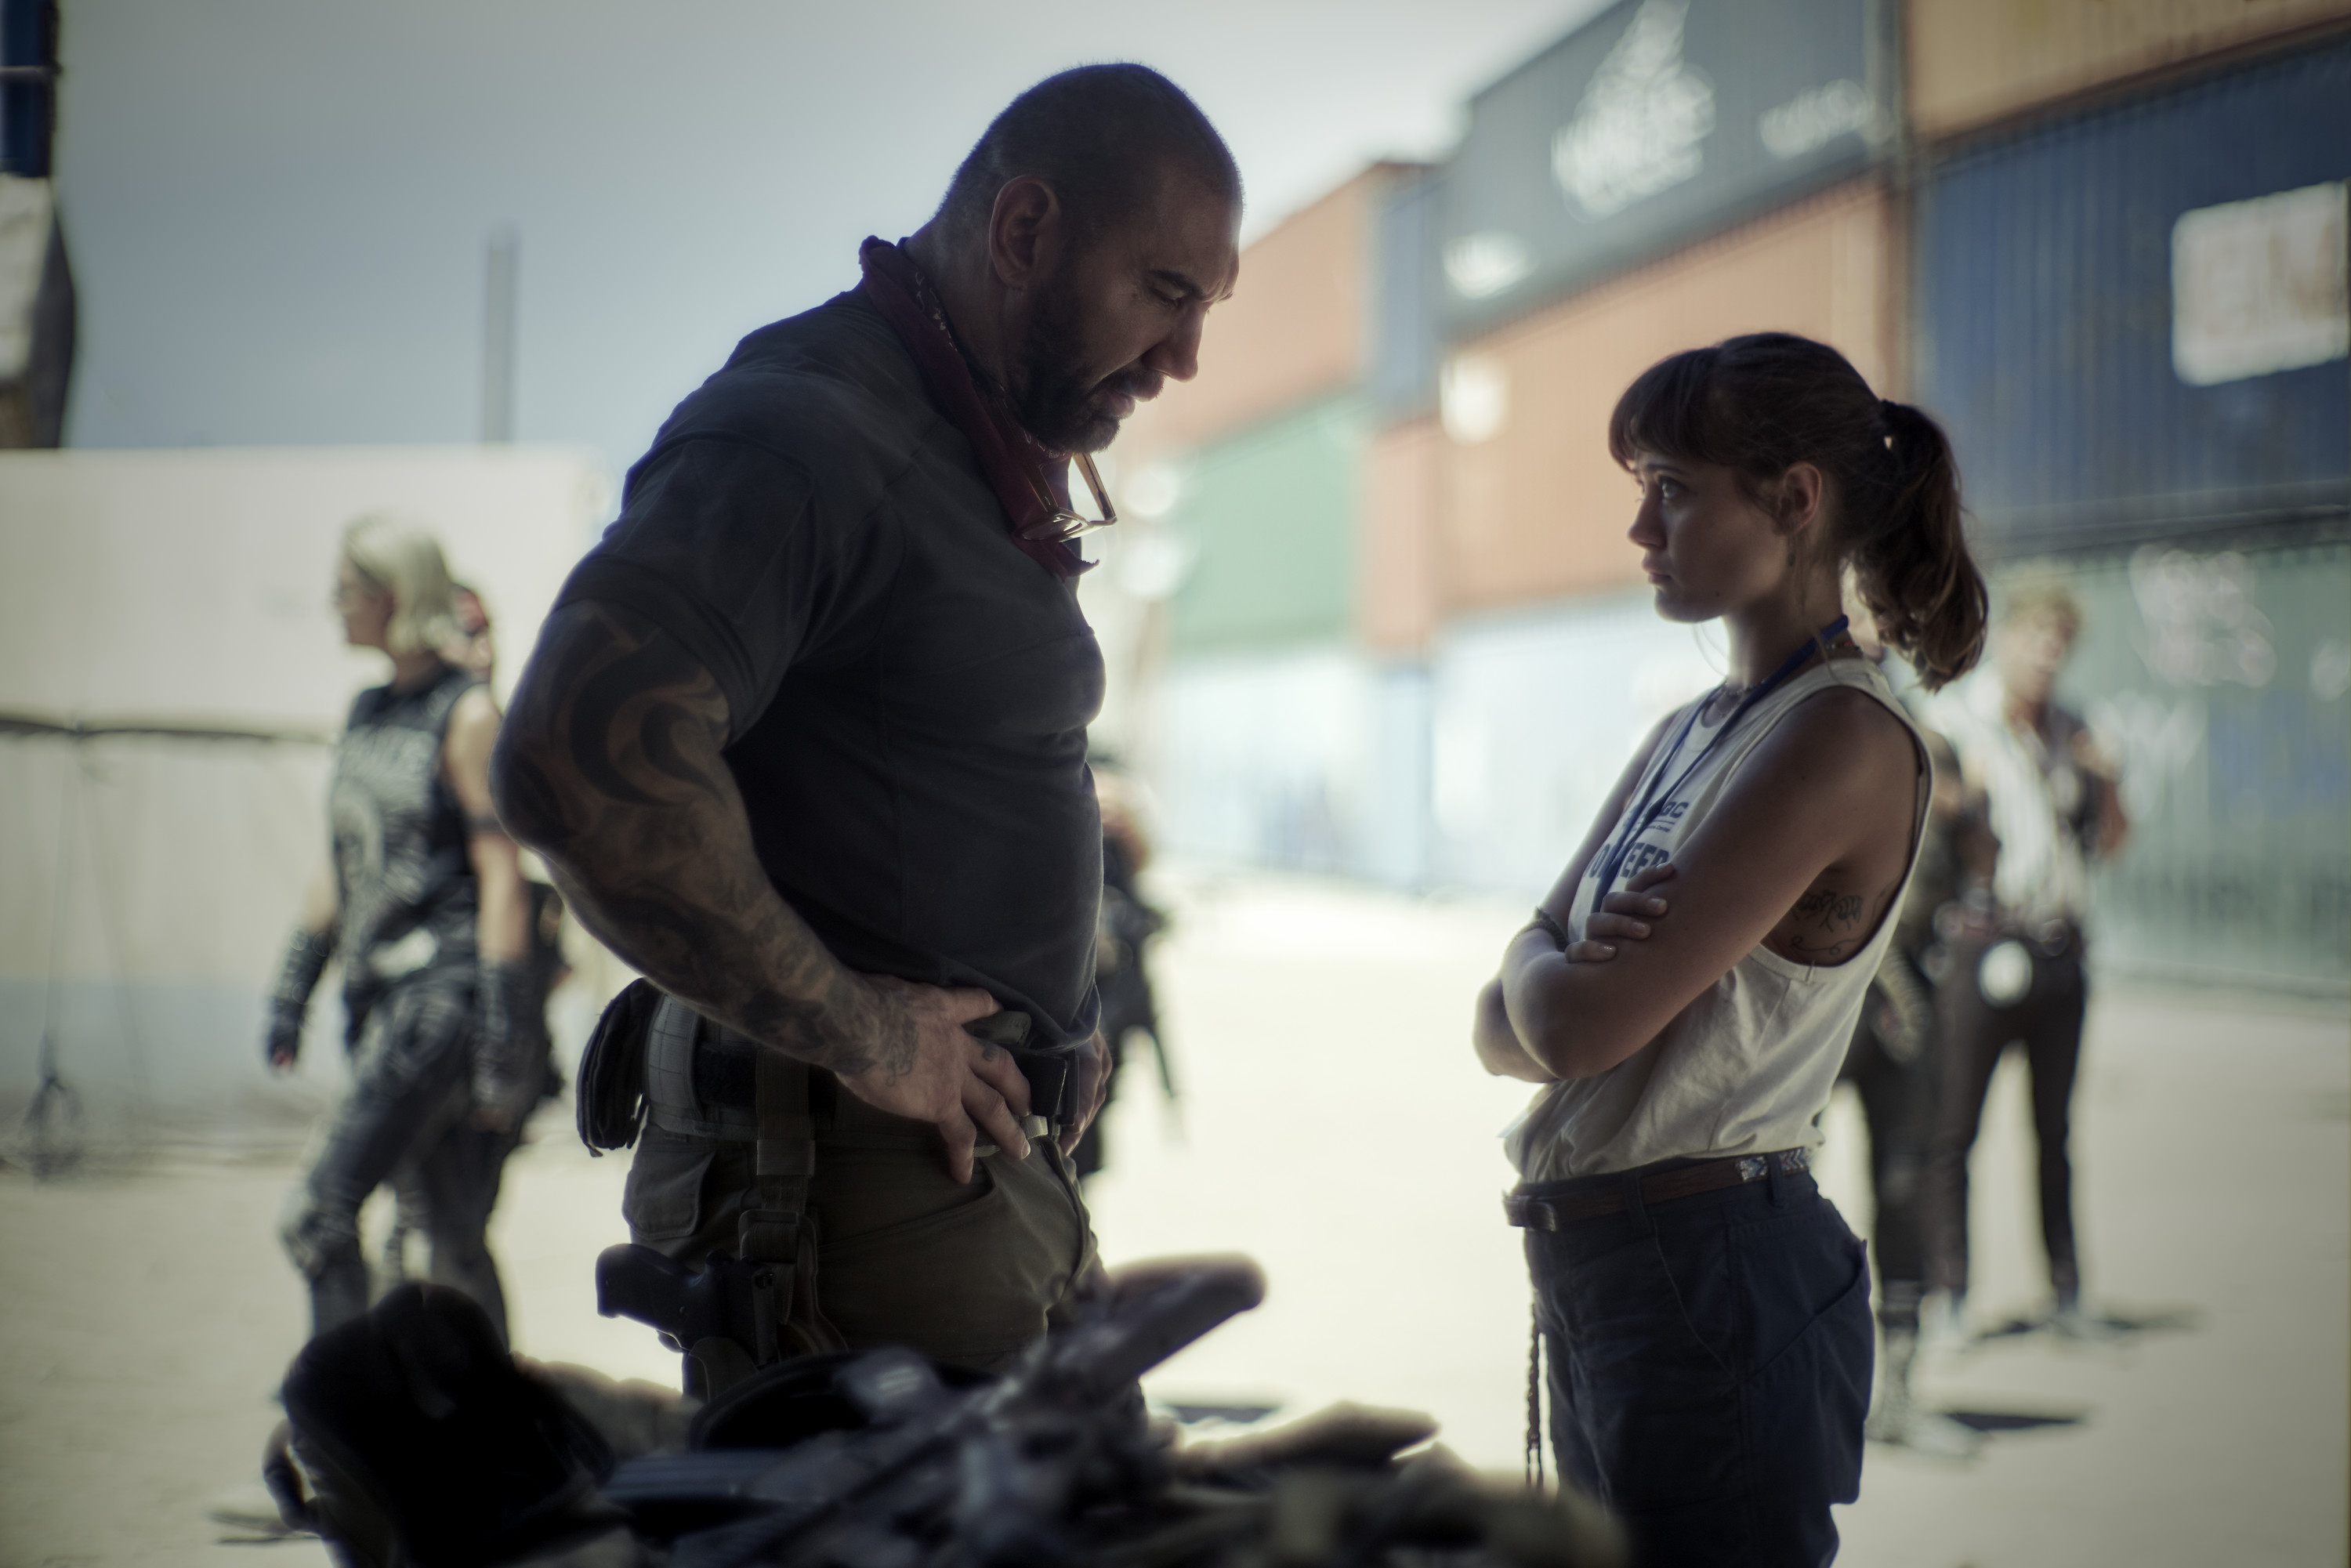 Dave Bautista and Ella Purnell in the father-daughter reconciliation portion of the movie